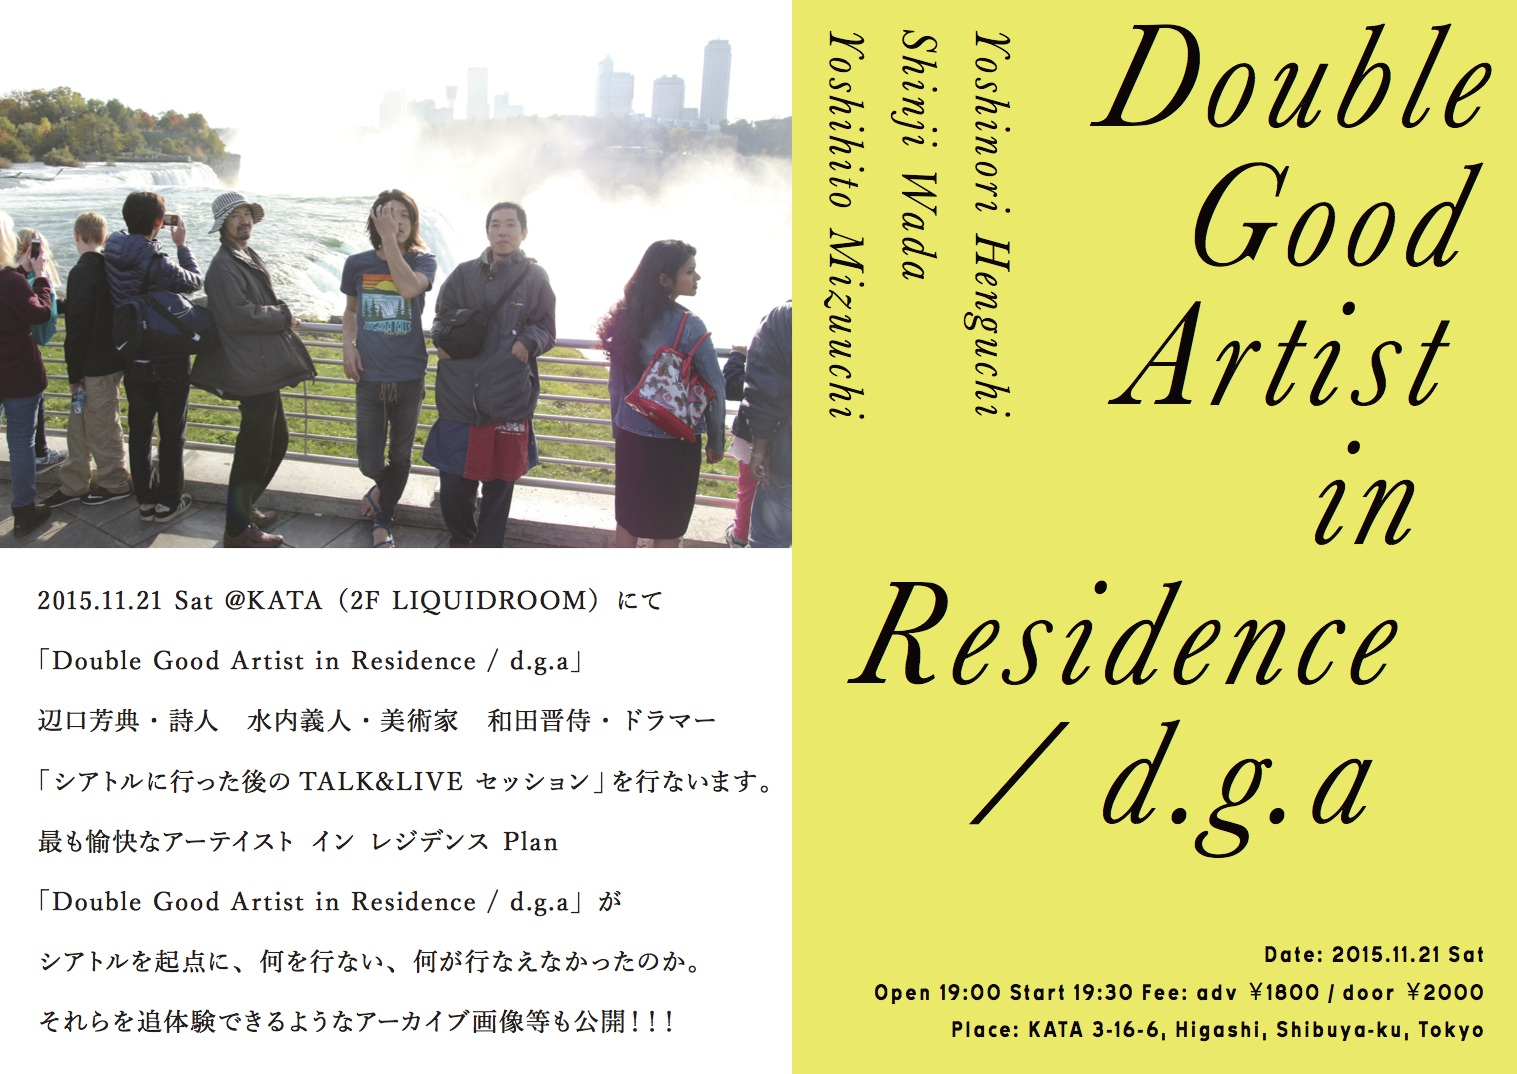 Double Good Artist in Residence / d.g.a